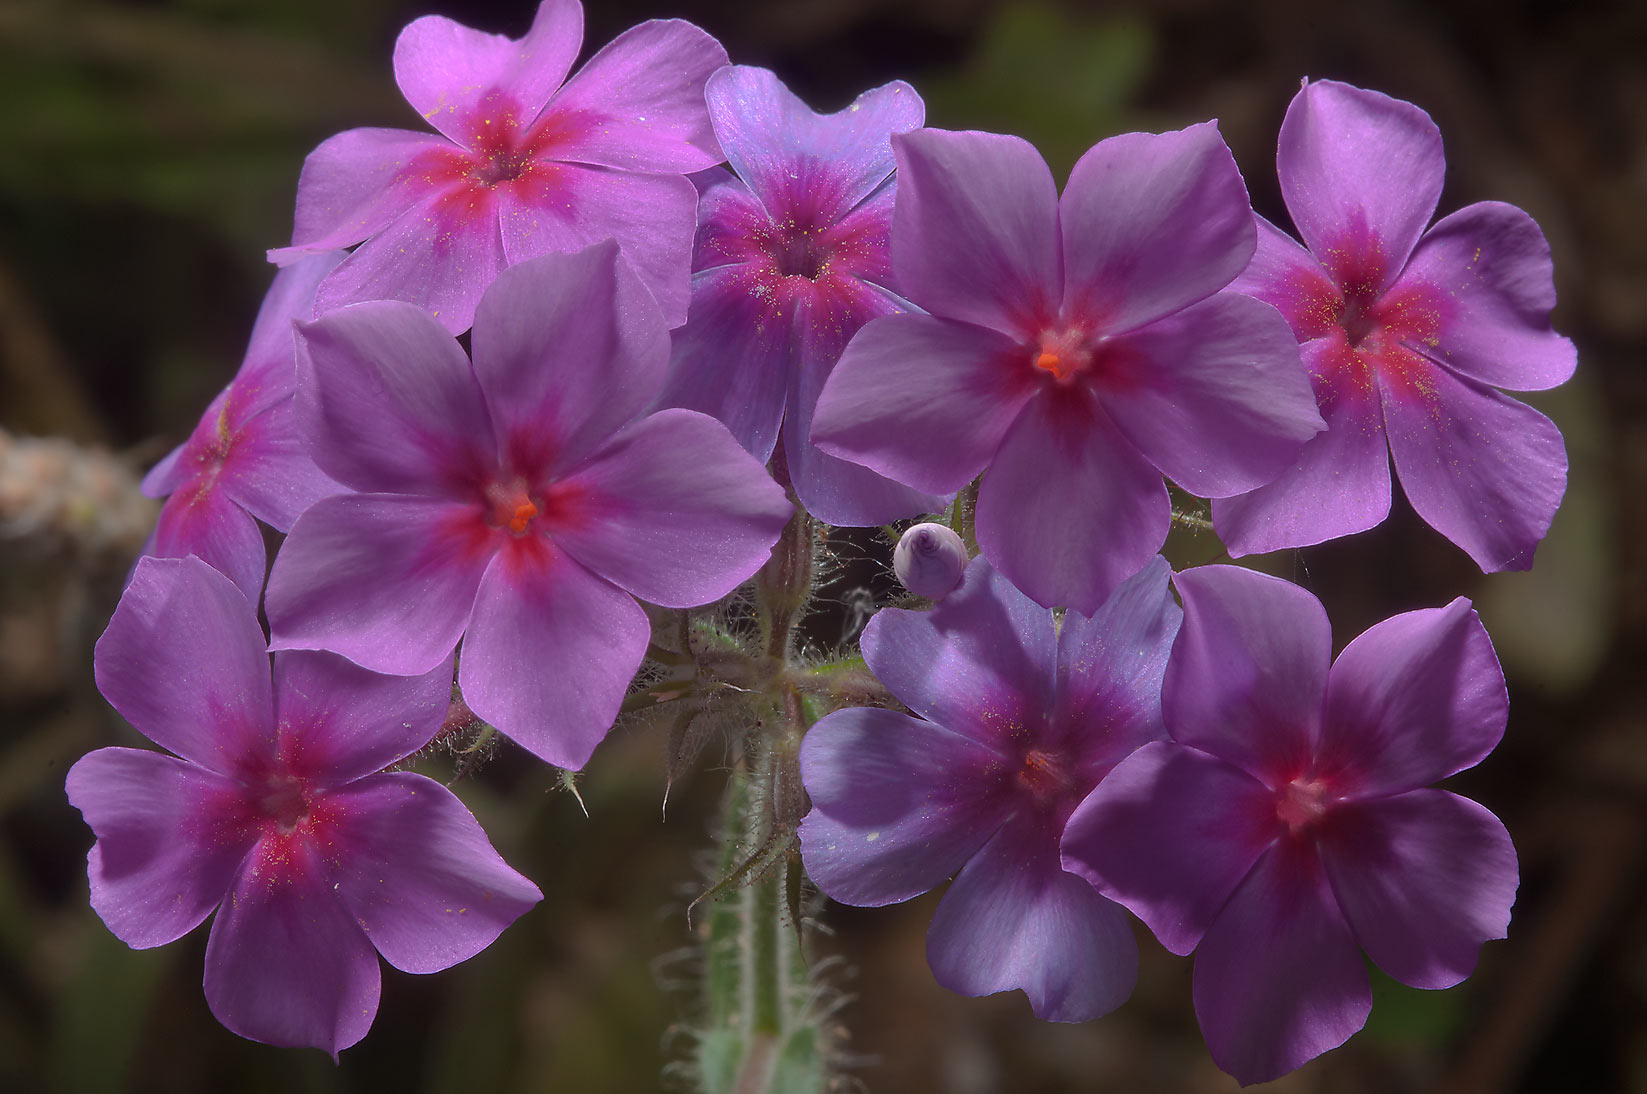 Pink phlox flowers in Birch Creek Unit of Lake Somerville State Park, Texas